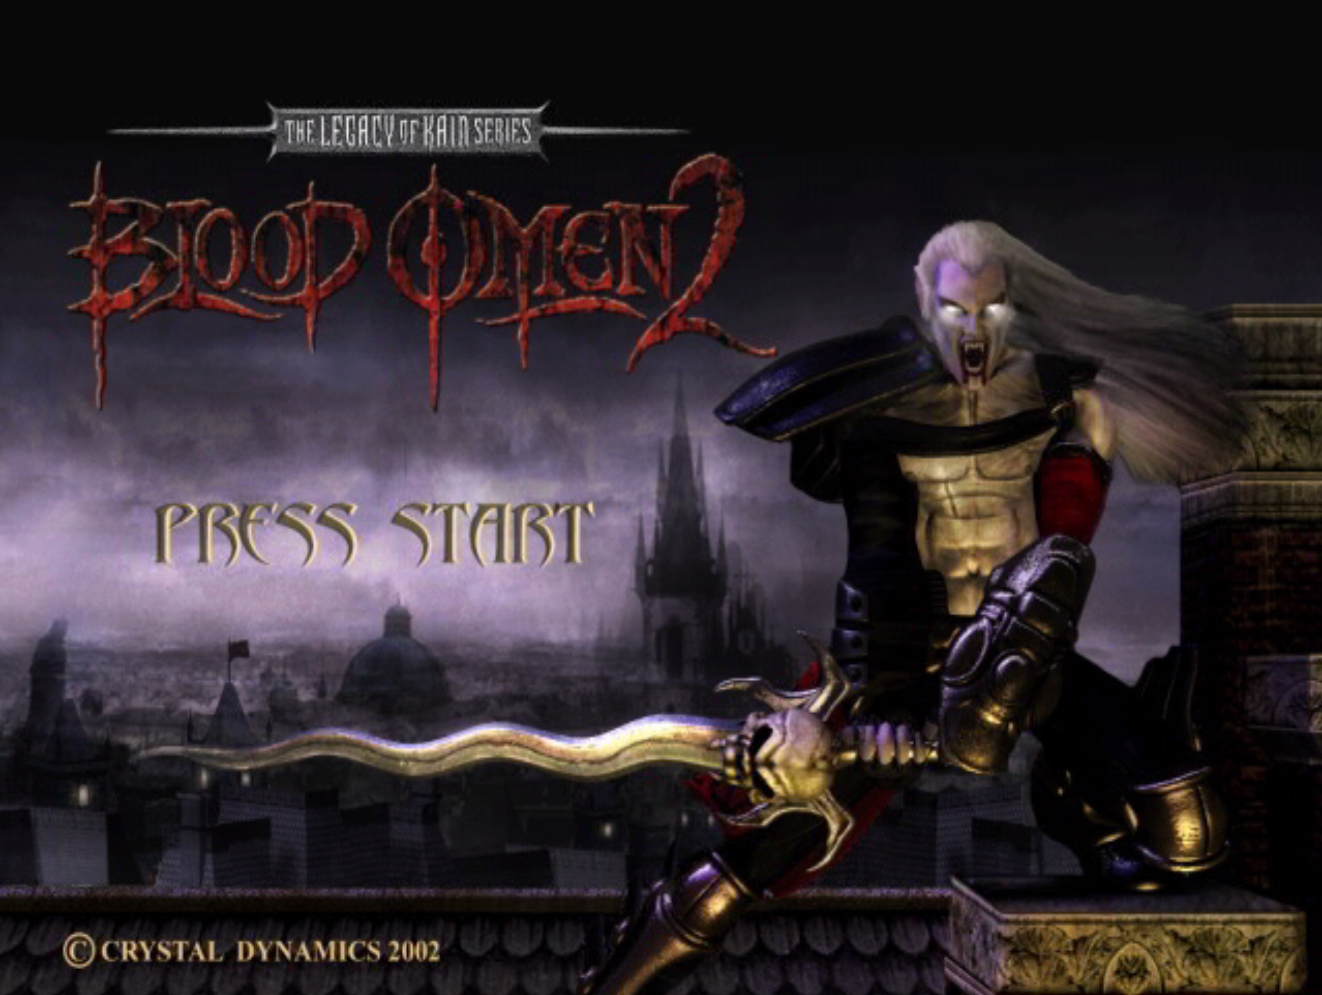 The Legacy of Kain Blood Omen 2 Title Screen